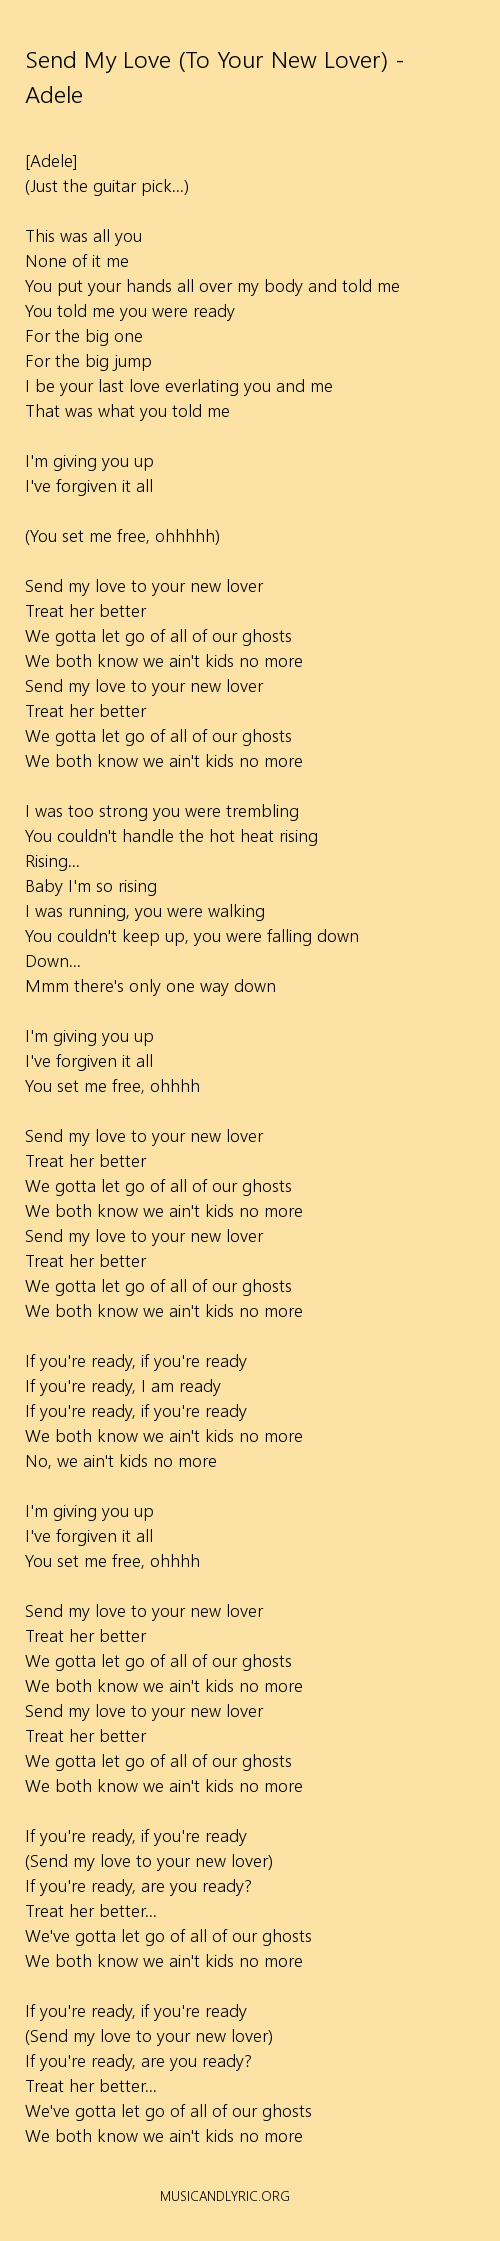 lovers in love lyrics